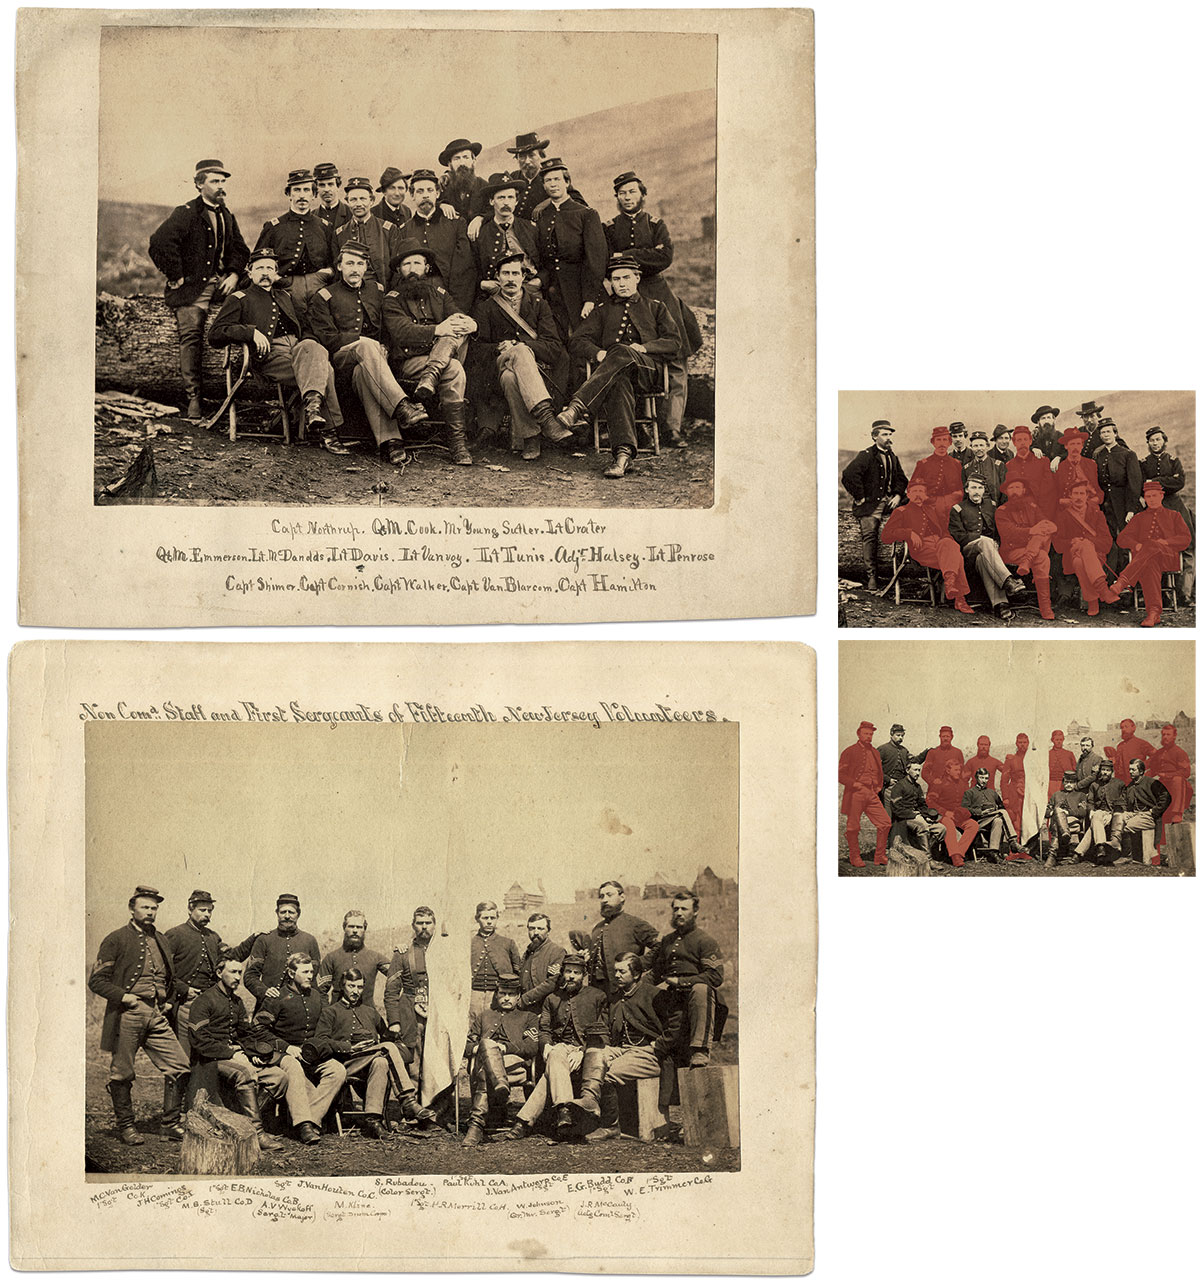 About half of the men—15 of 31—became casualties after these photographs were taken, most a few months later at Spotsylvania. Albumen prints by Weitfle and Wright, 1st Division, 6th Corps photographers.